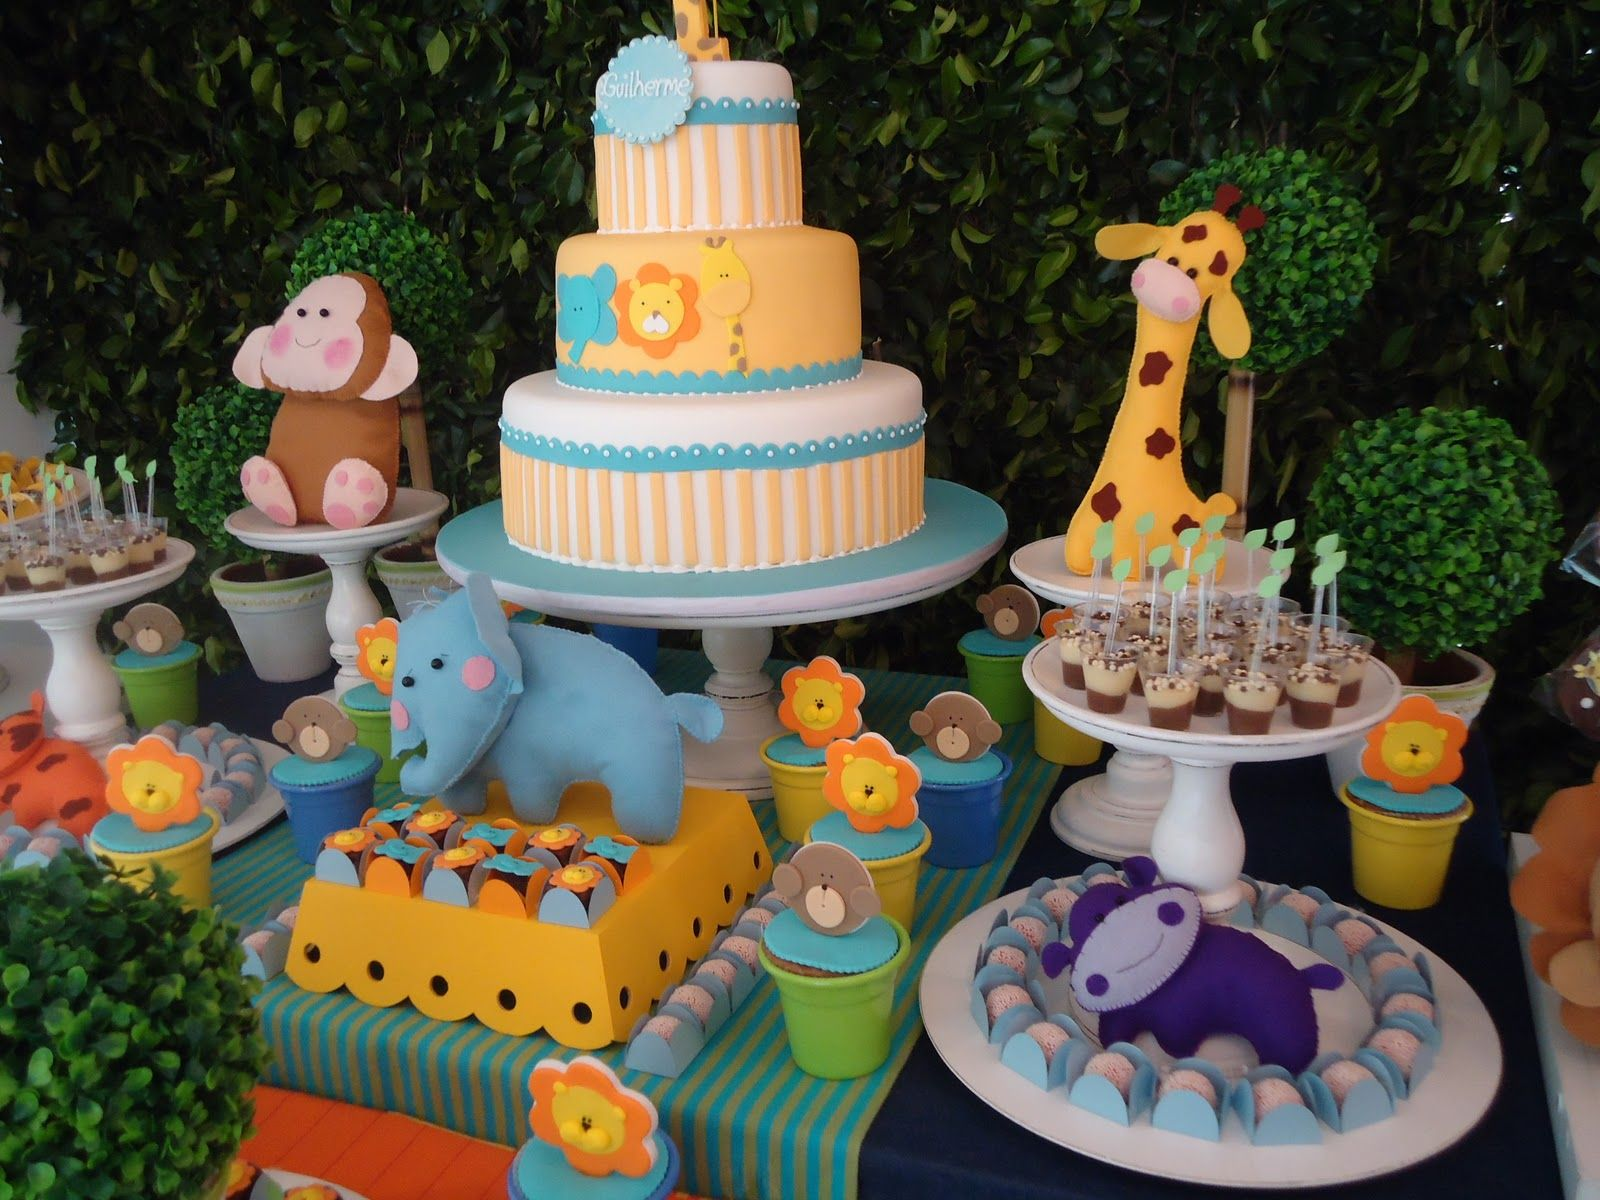 Pin by Jasmine Brielle Ruste on Noahs Ark Party Pinterest Zoos